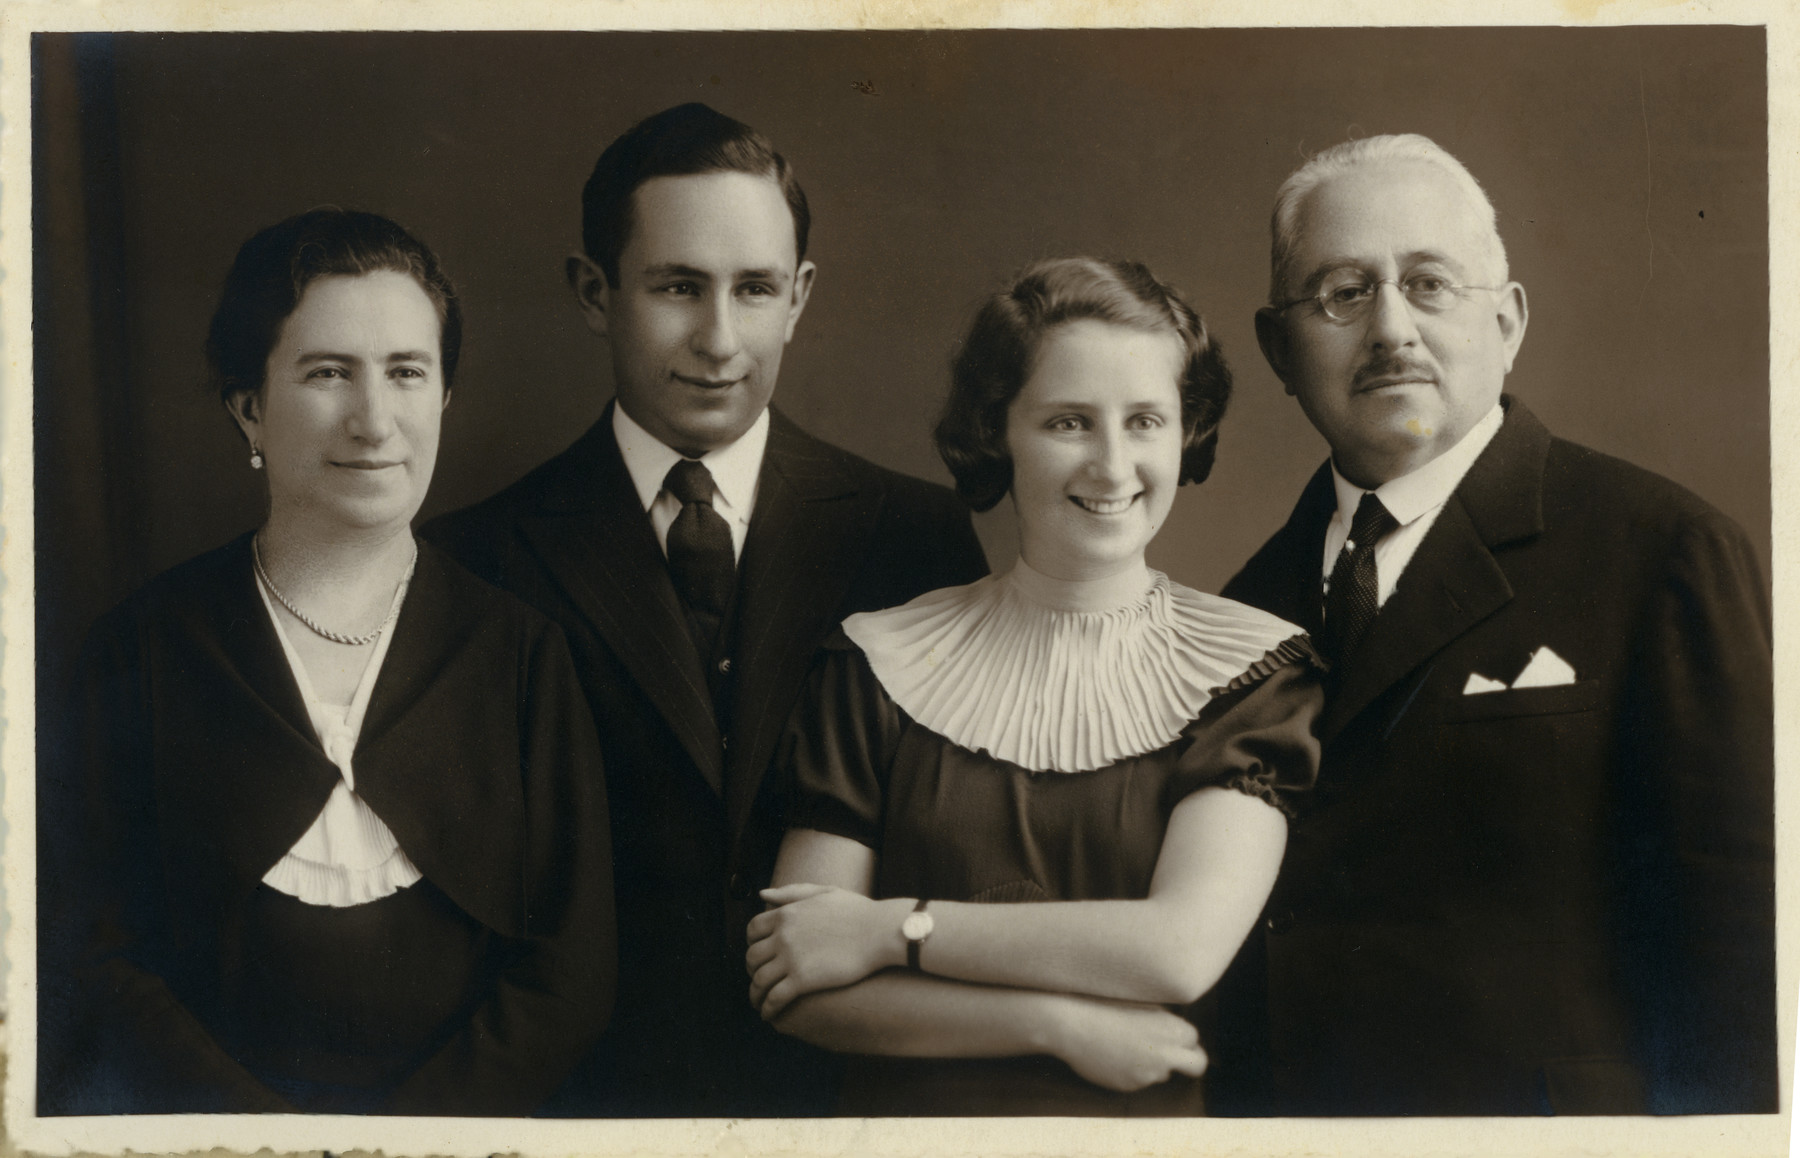 Studio portrait of the Lenji family.  Fromt left to right are mother Aronka, son Lorand, daughter Stephanie, and father Josef.